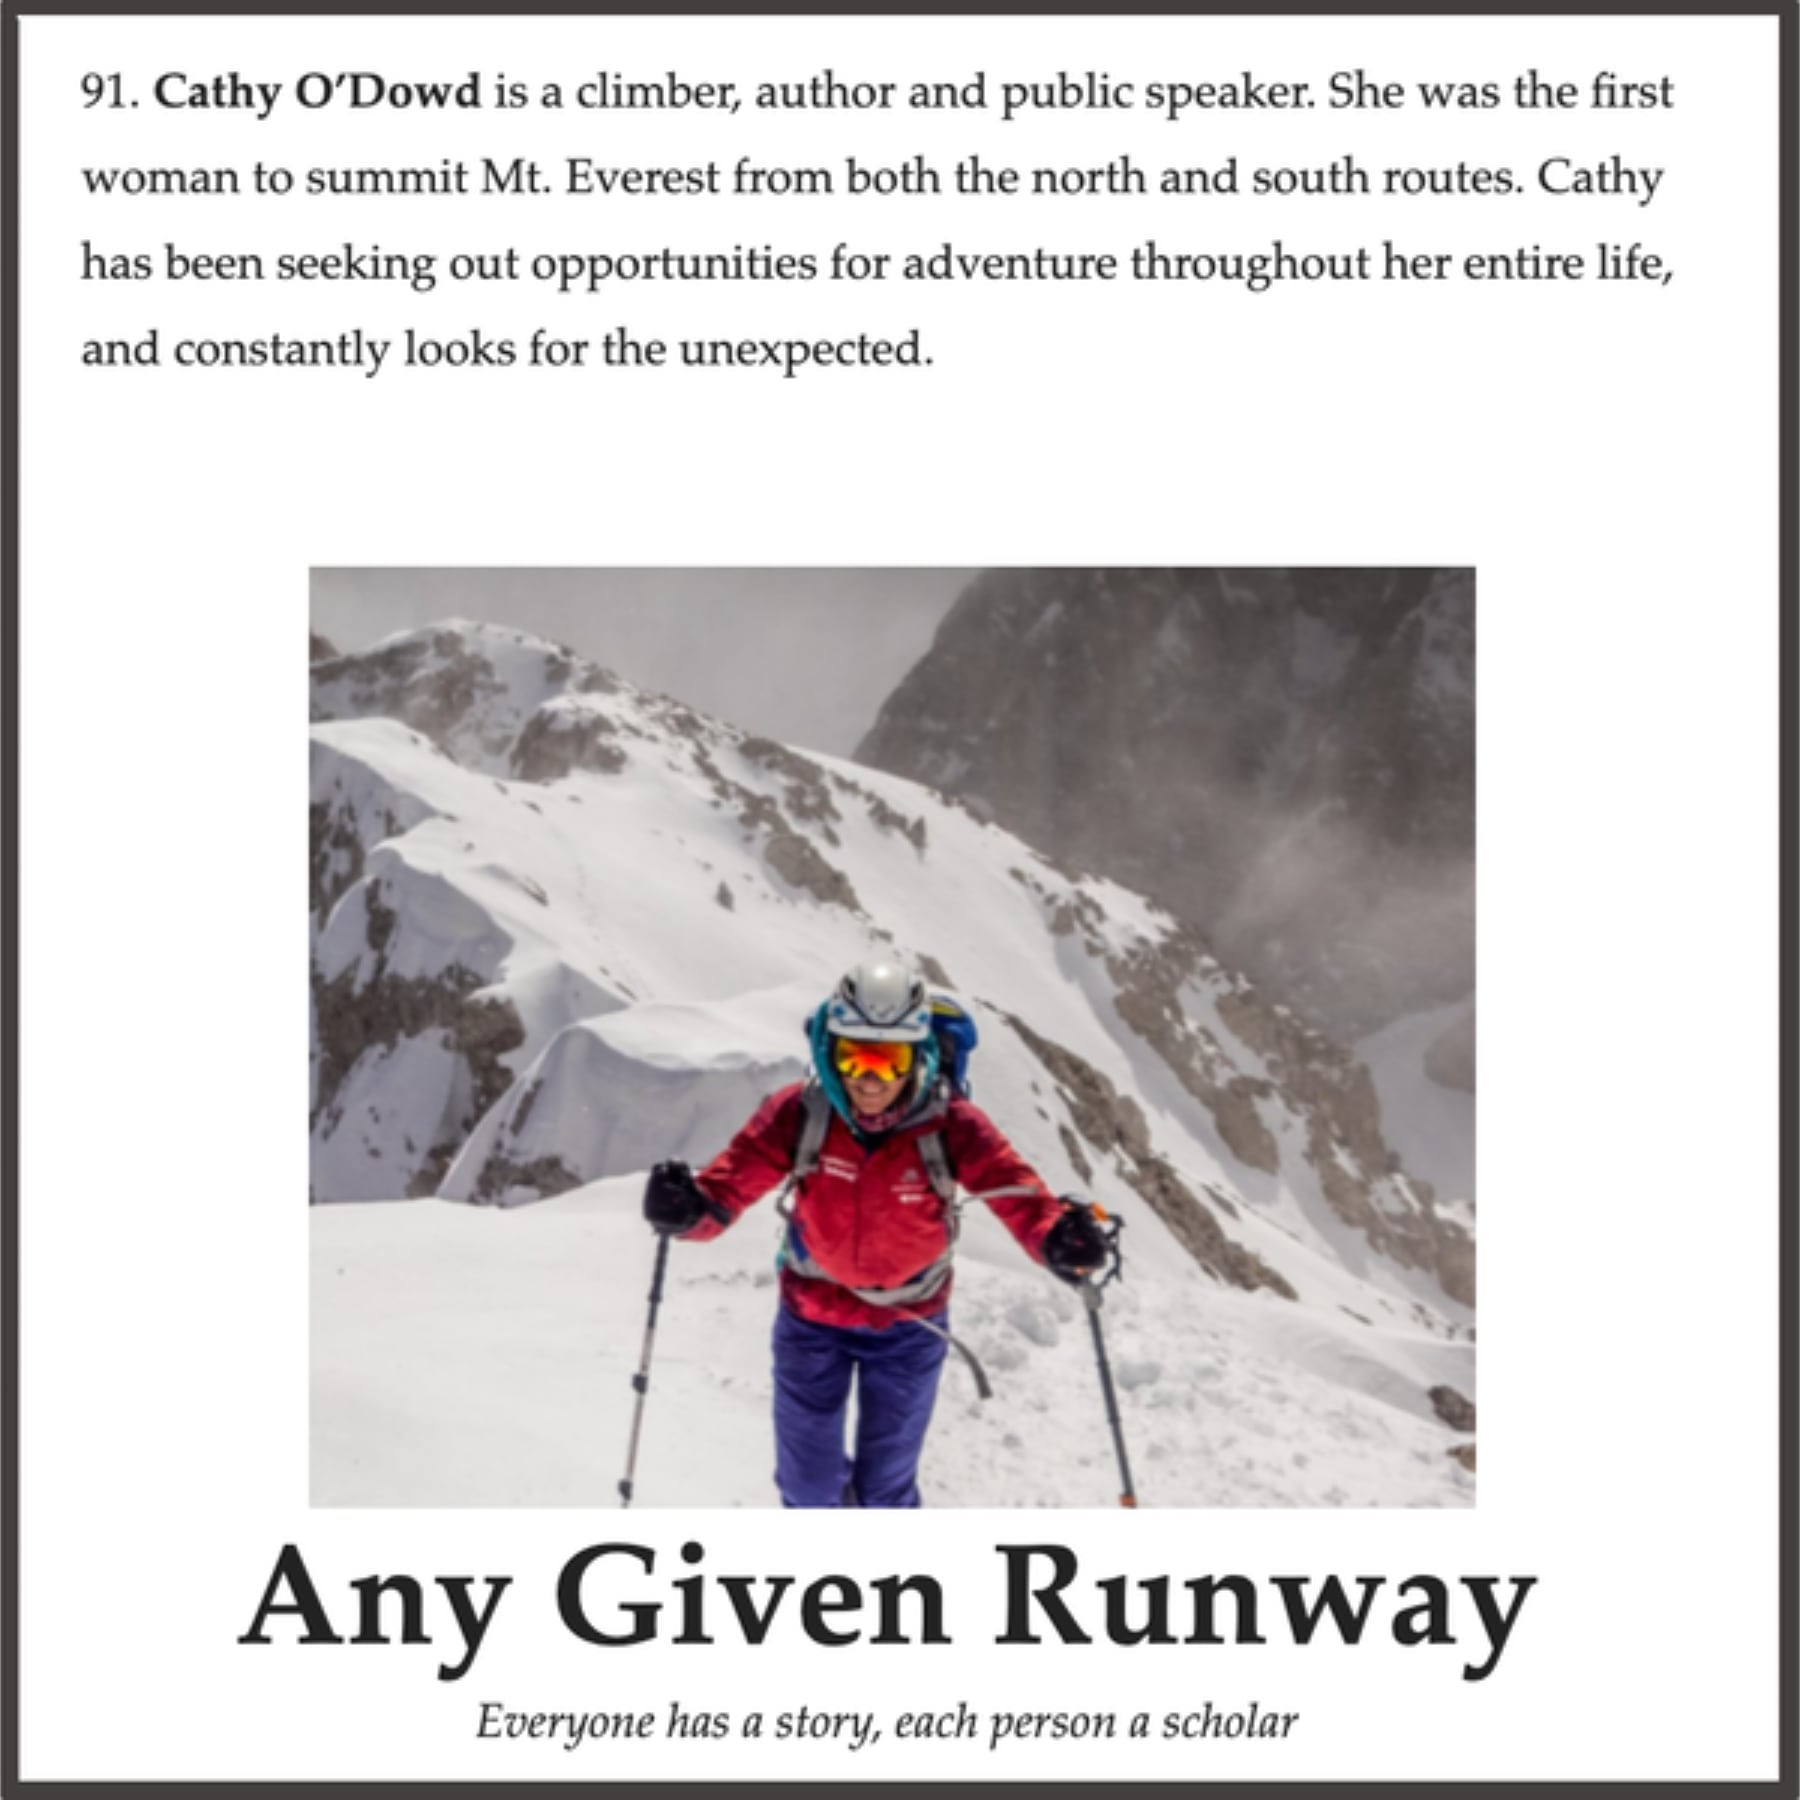 Interview with the Any Given Runway podcast